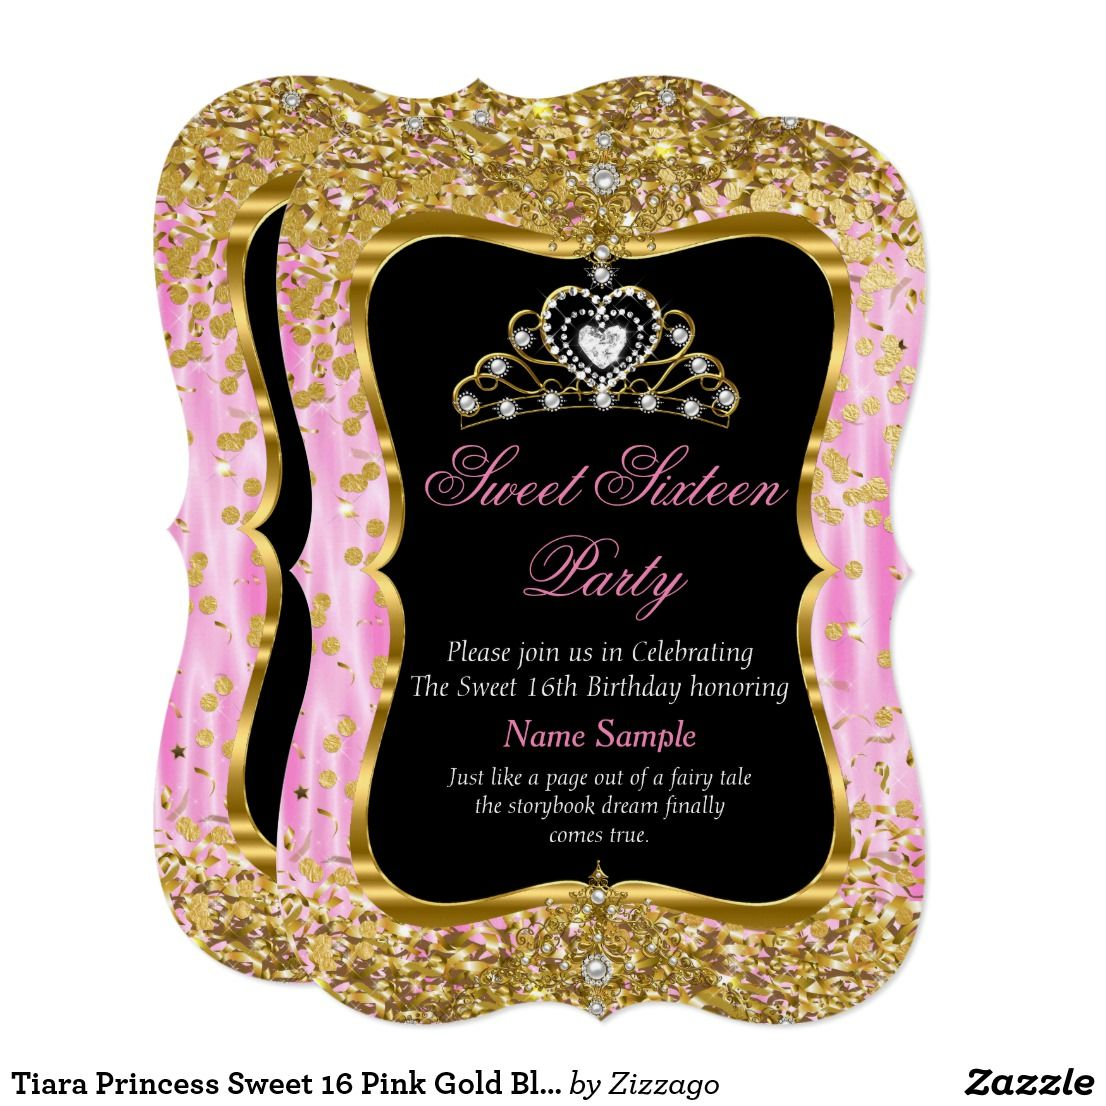 Tiara Princess Sweet 16 Pink Gold Black Invite In 2018